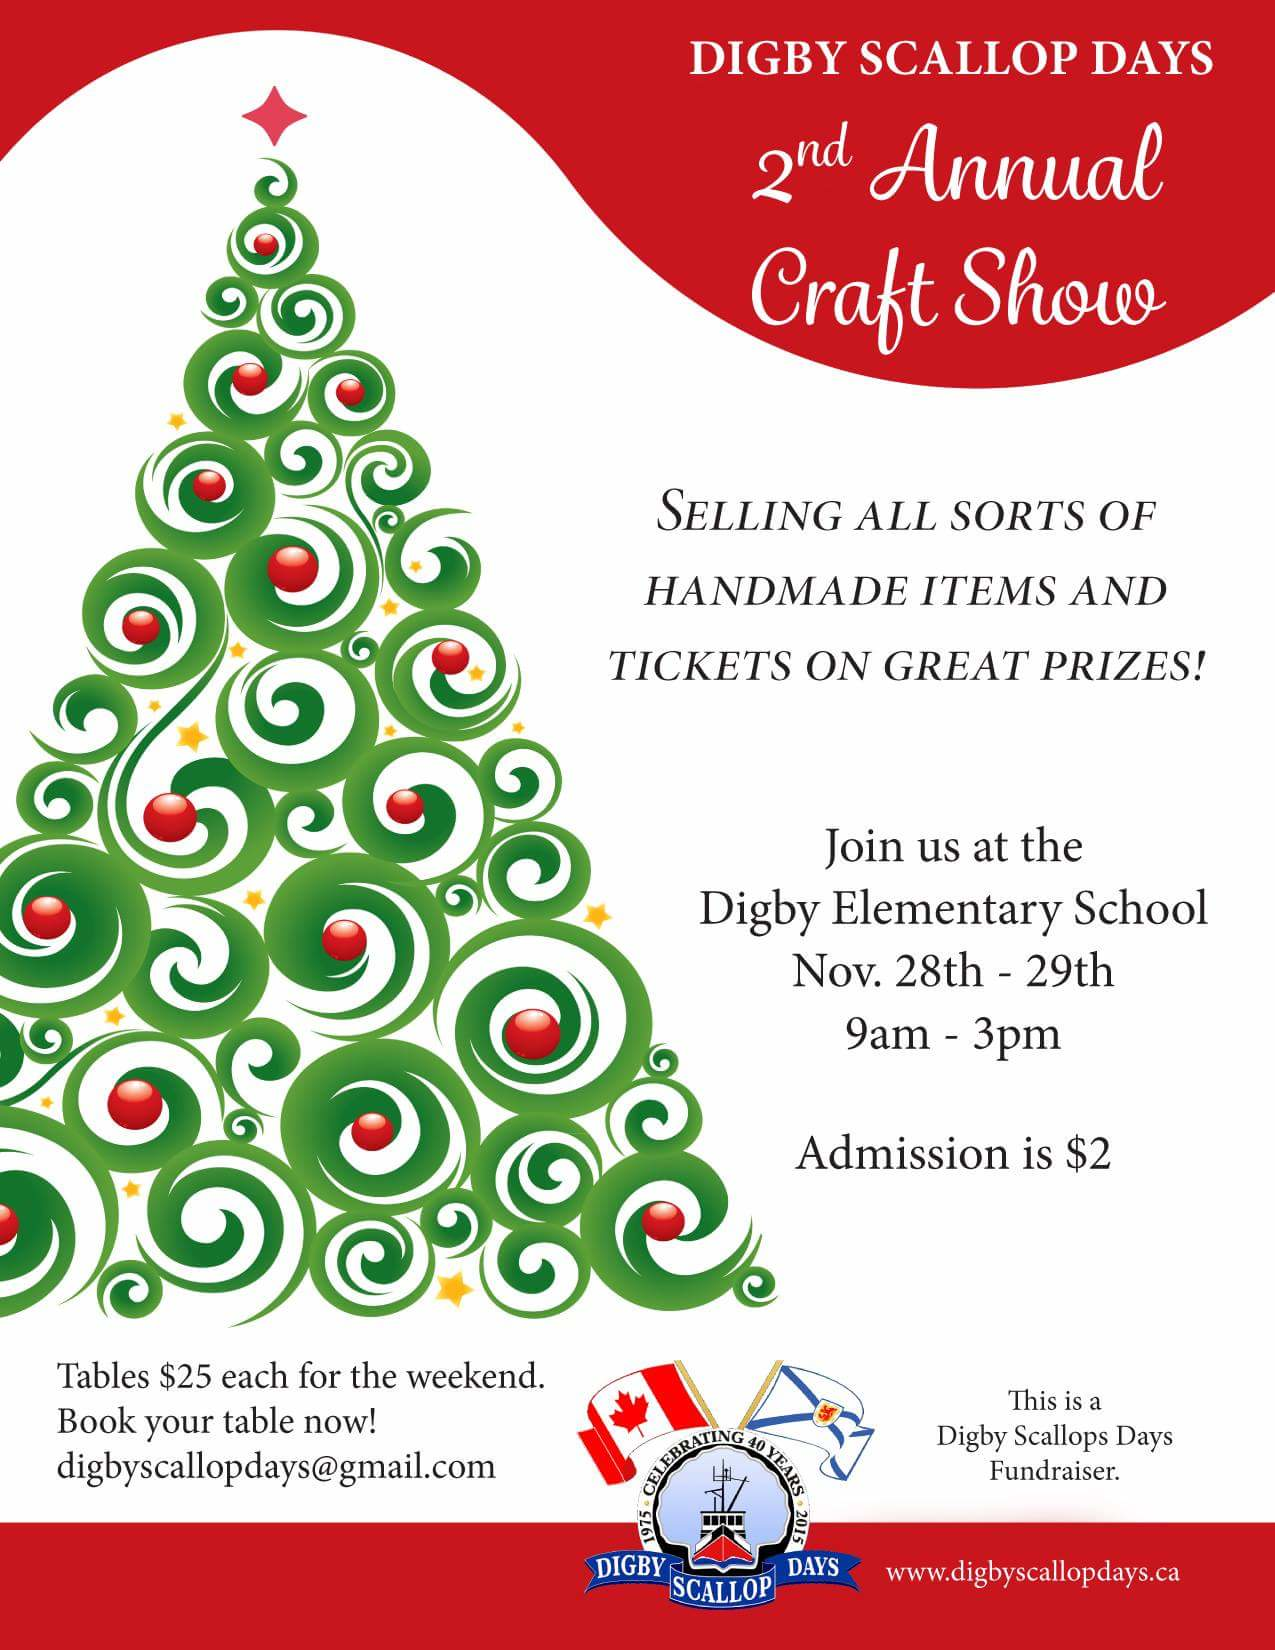 Christmas Craft Show Items.Christmas Craft Show At Elementary School Digby November